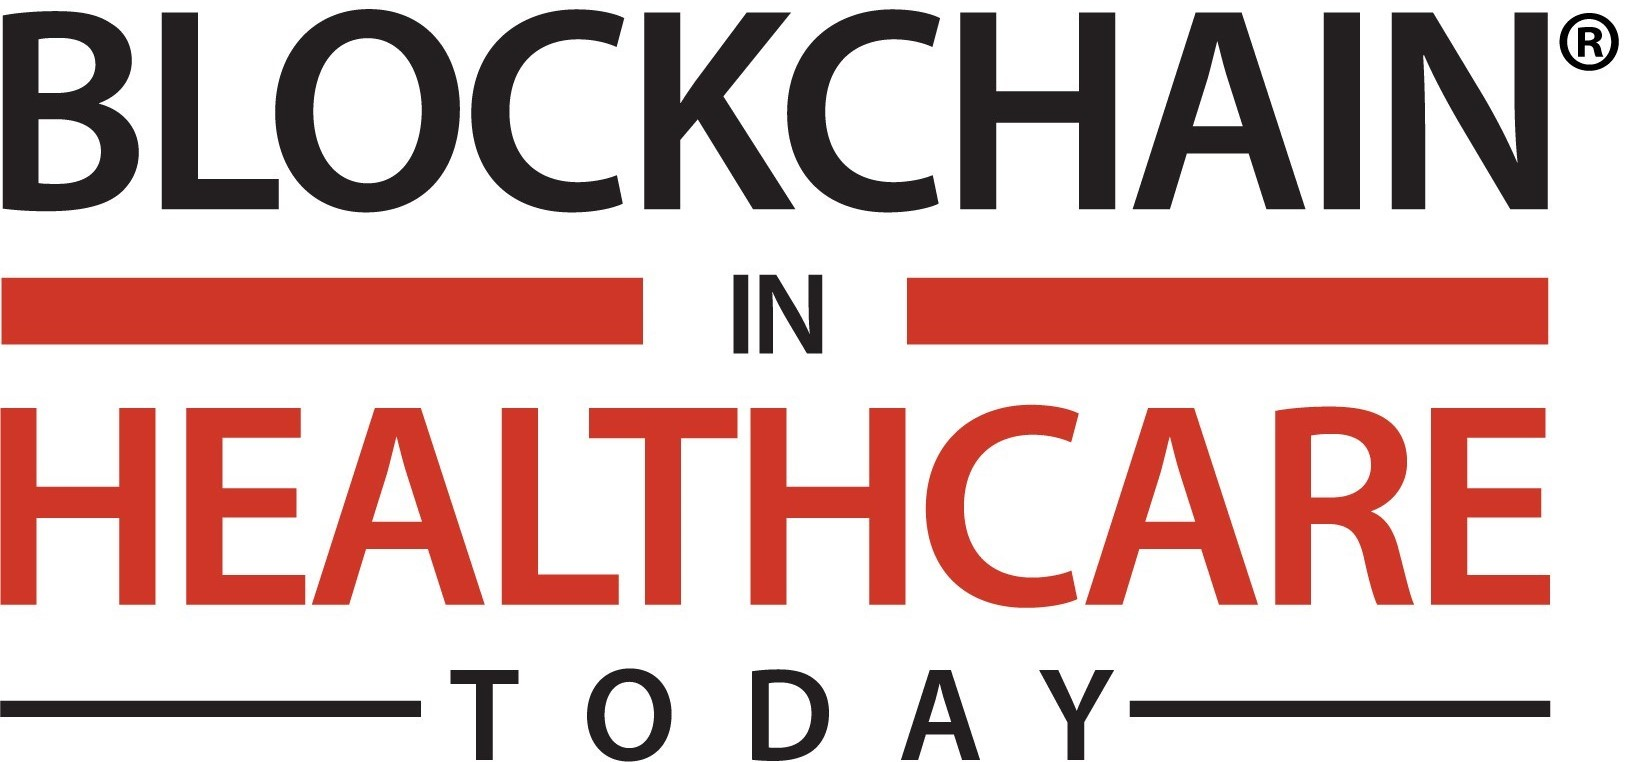 Blockchain in Healthcare Today (BHTY) is the world's first peer review journal that amplifies and disseminates distributed ledger technology research and innovations in the healthcare sector.